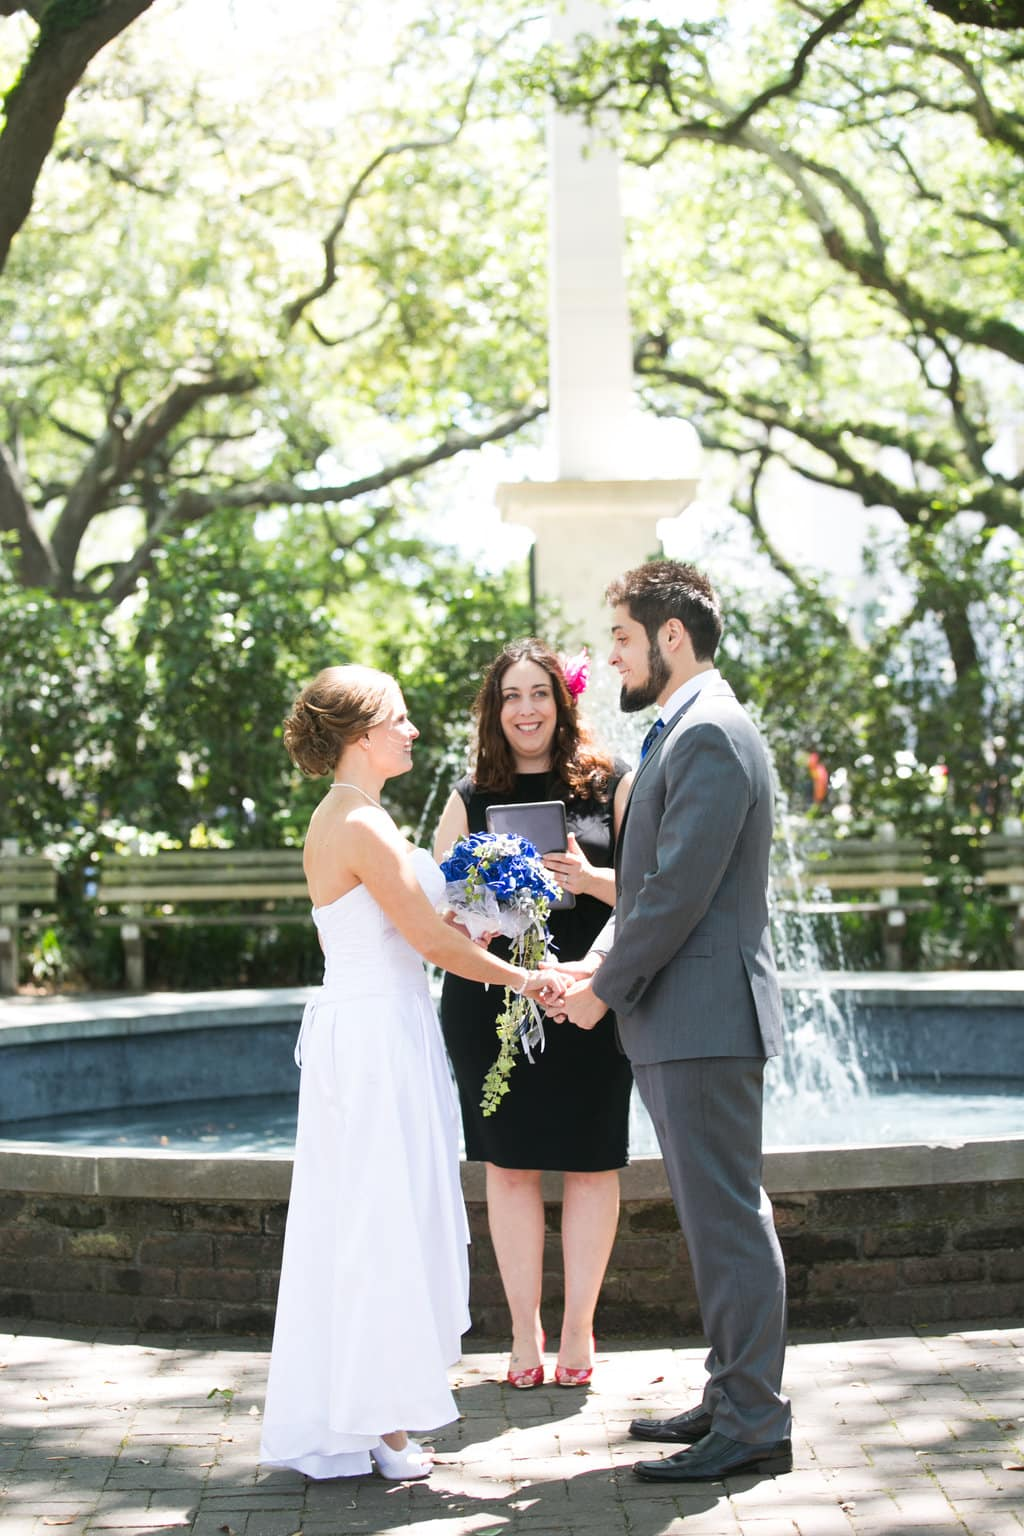 Johnson Square ceremony in Savannah, GA